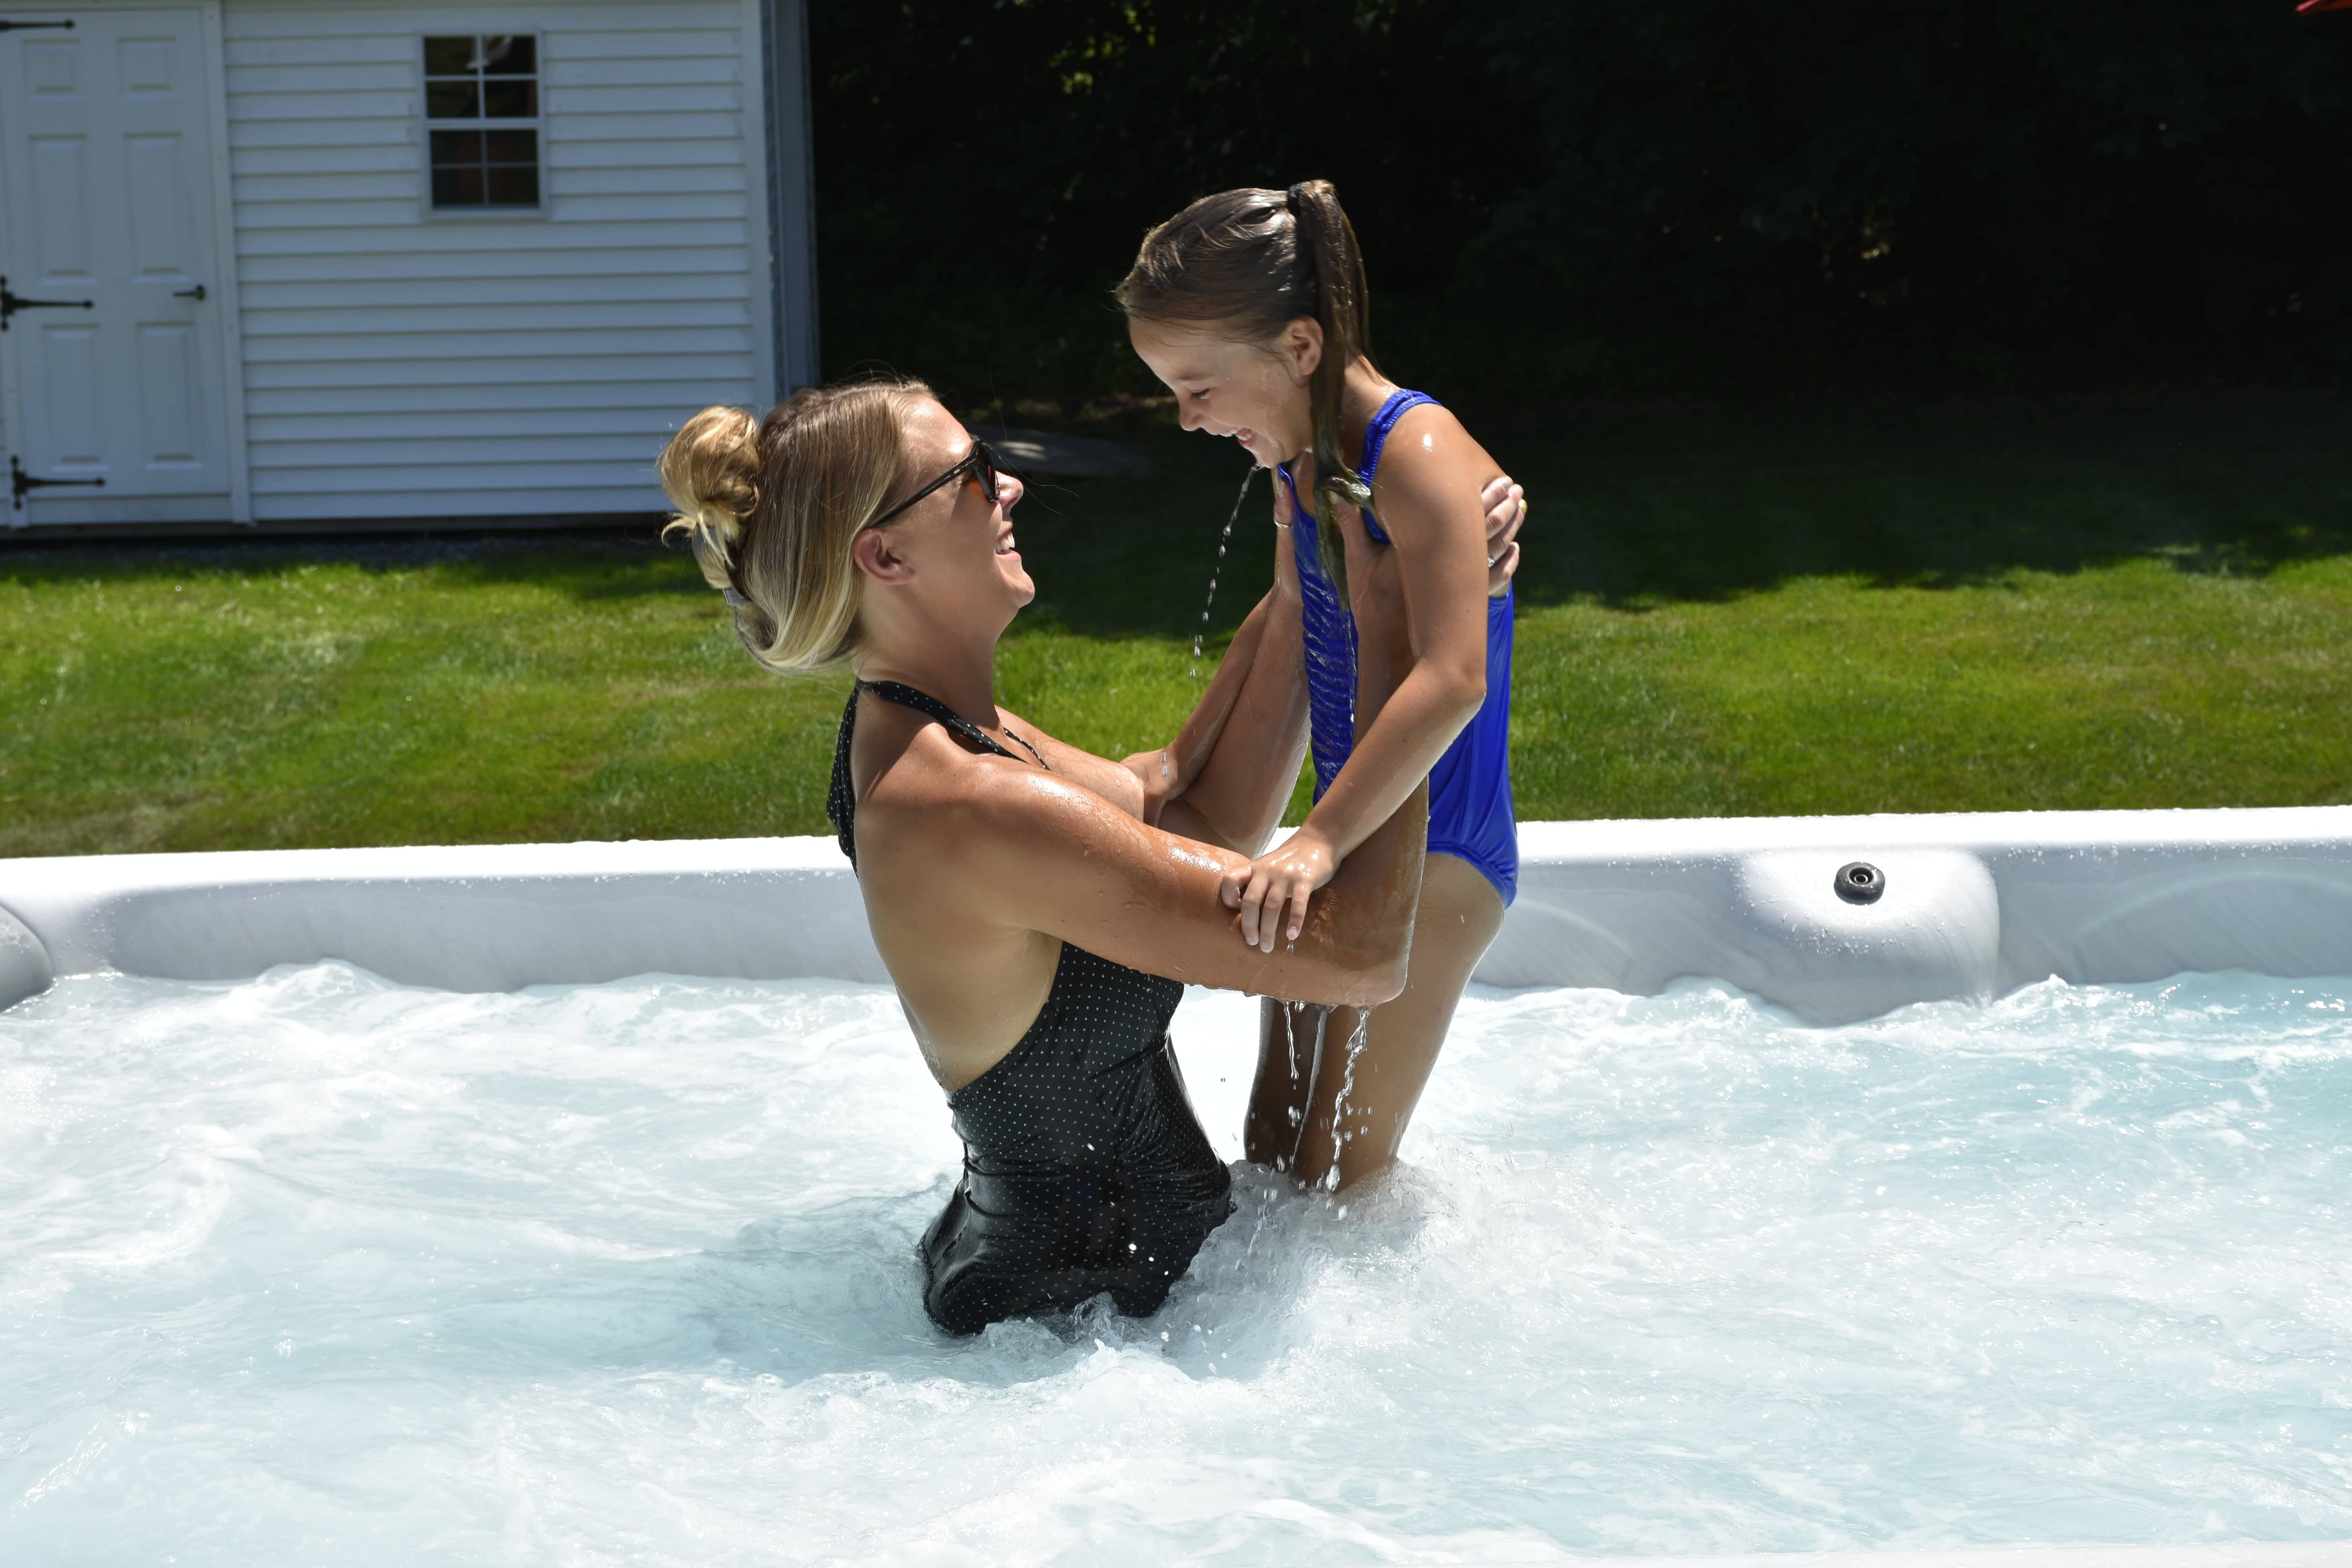 A Gift for the Mom Who Has it All - RnR Hot Tubs and Spa - Hot Tubs and Spas Calgary